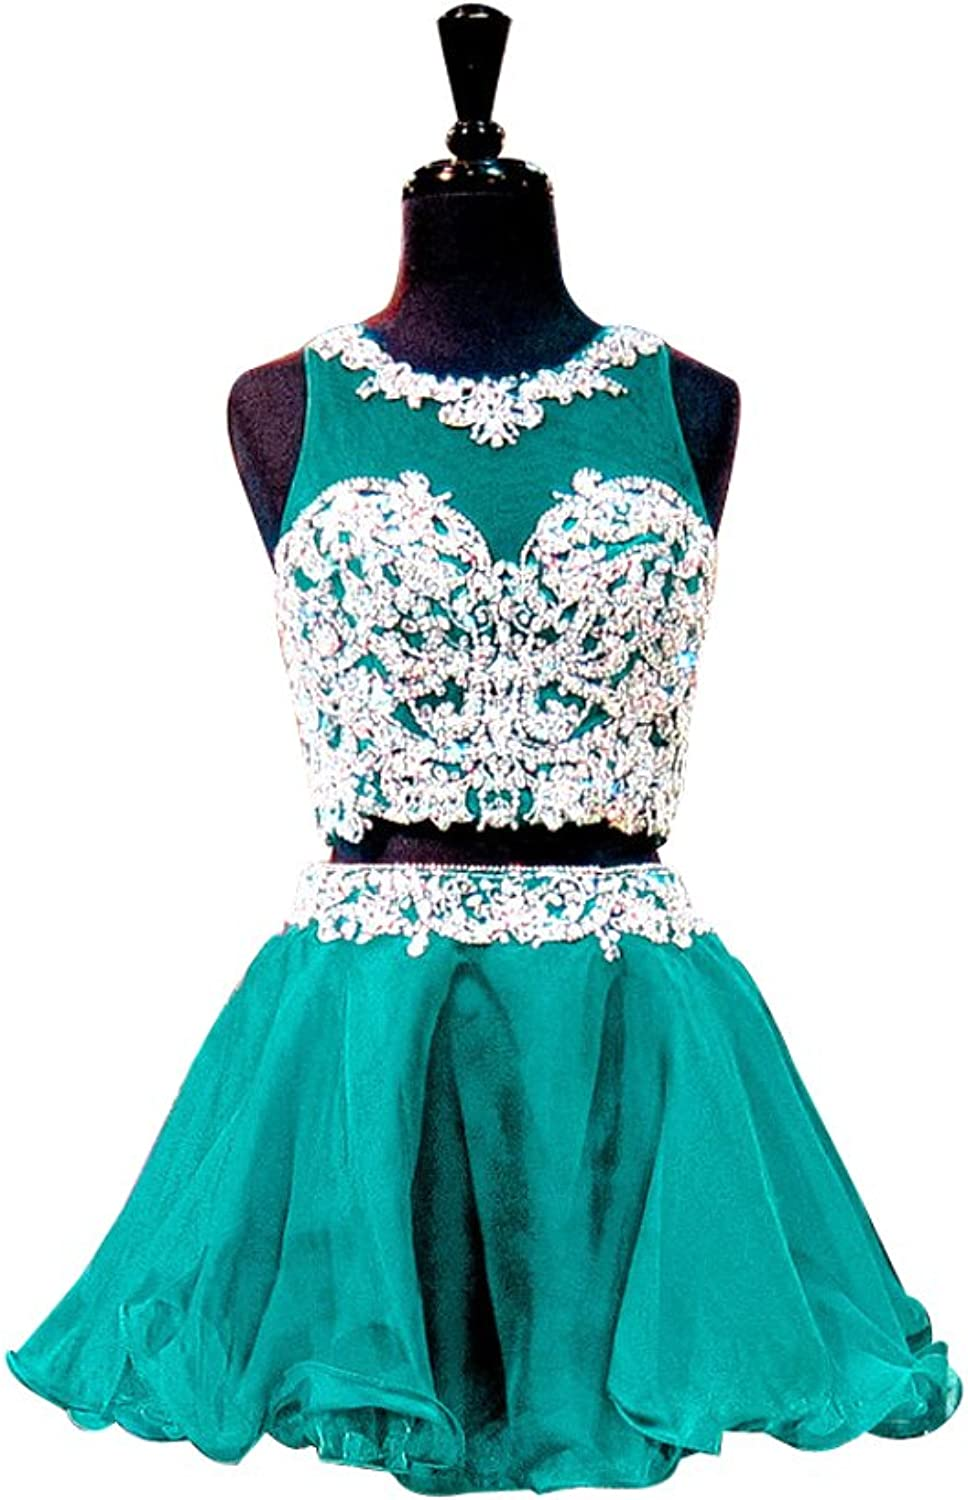 LISA.MOON Women's Jewel Neck Appliqued Two Pieces Tulle Short Homecoming Dresses